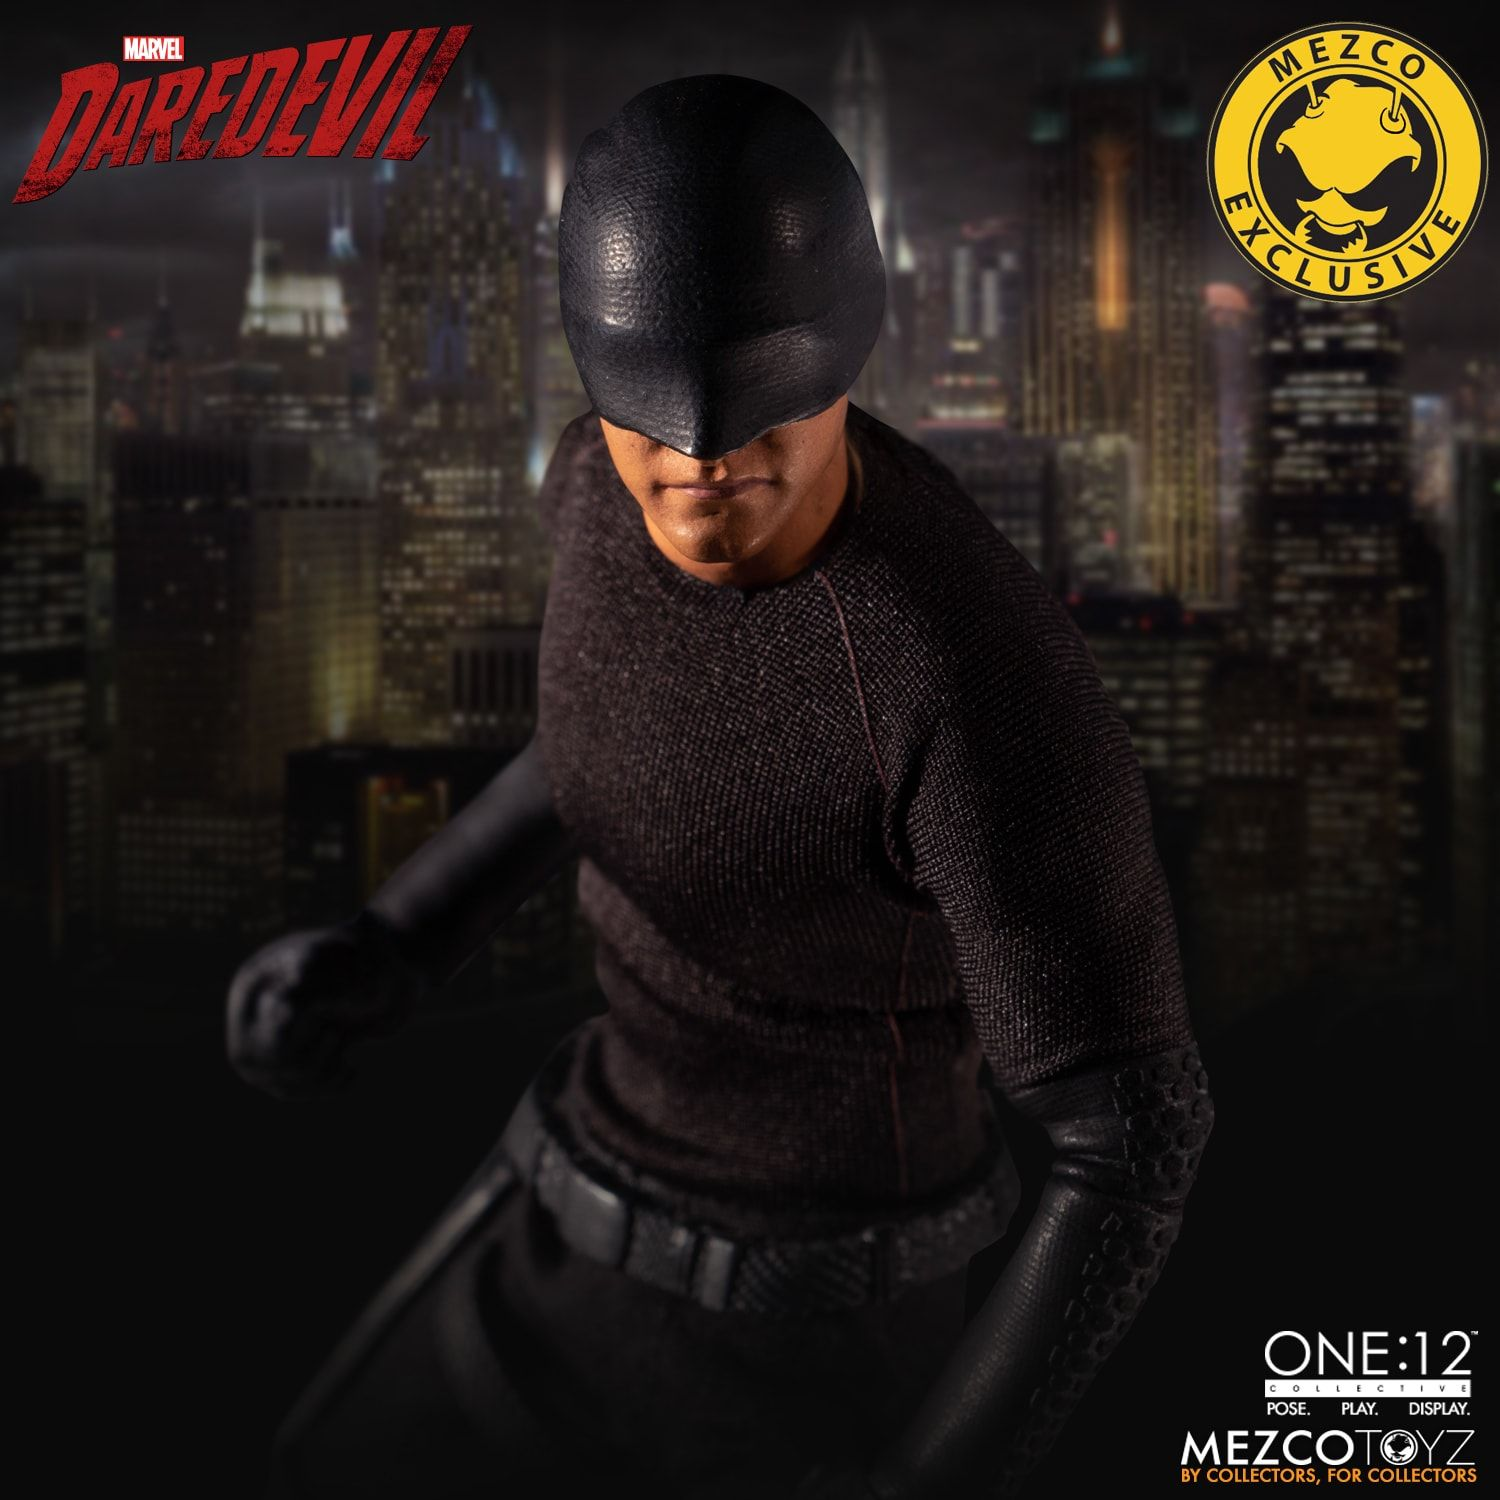 One:12 Collective: Netflix Marvel Daredevil – Vigilante Edition!